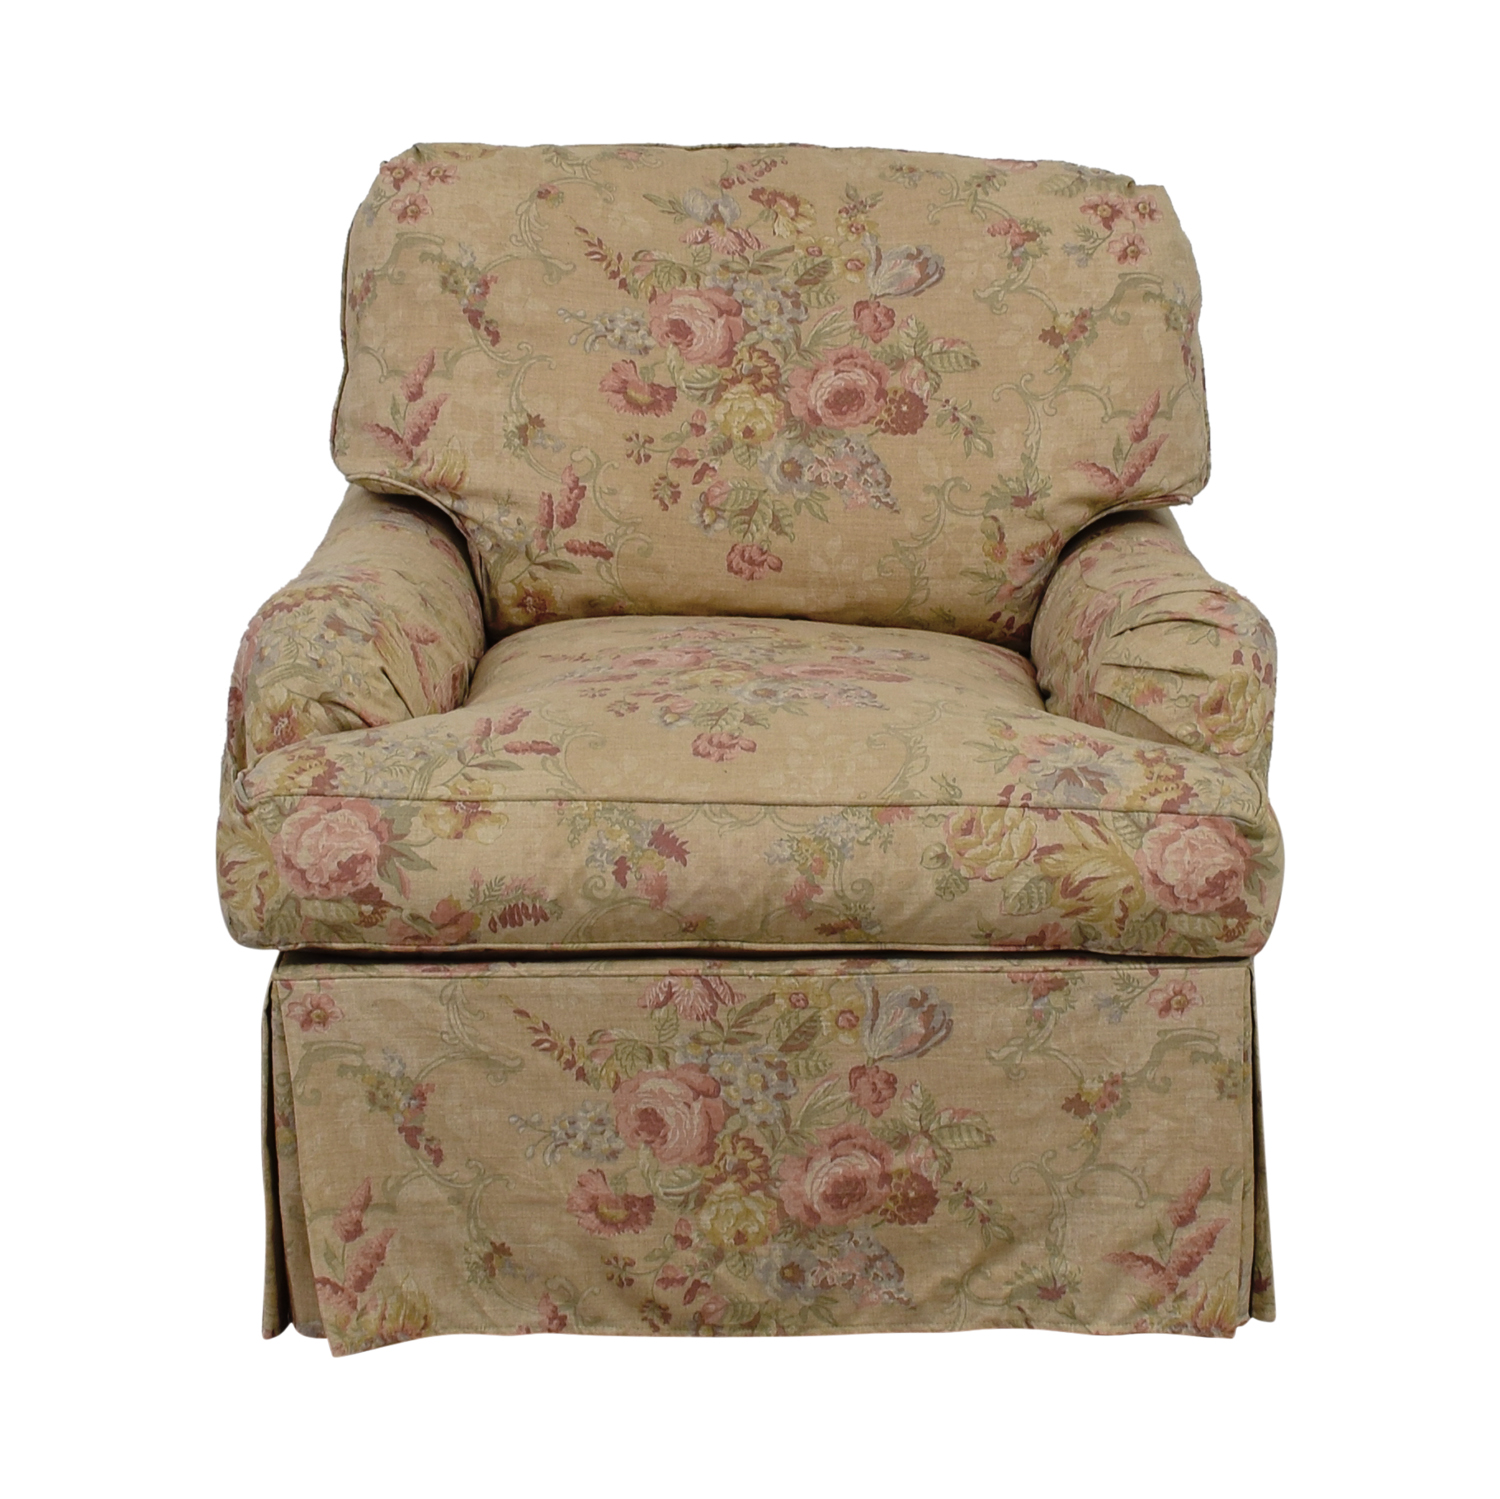 Buy Domain Domain Beige And Pink Floral Accent Chair Online ...